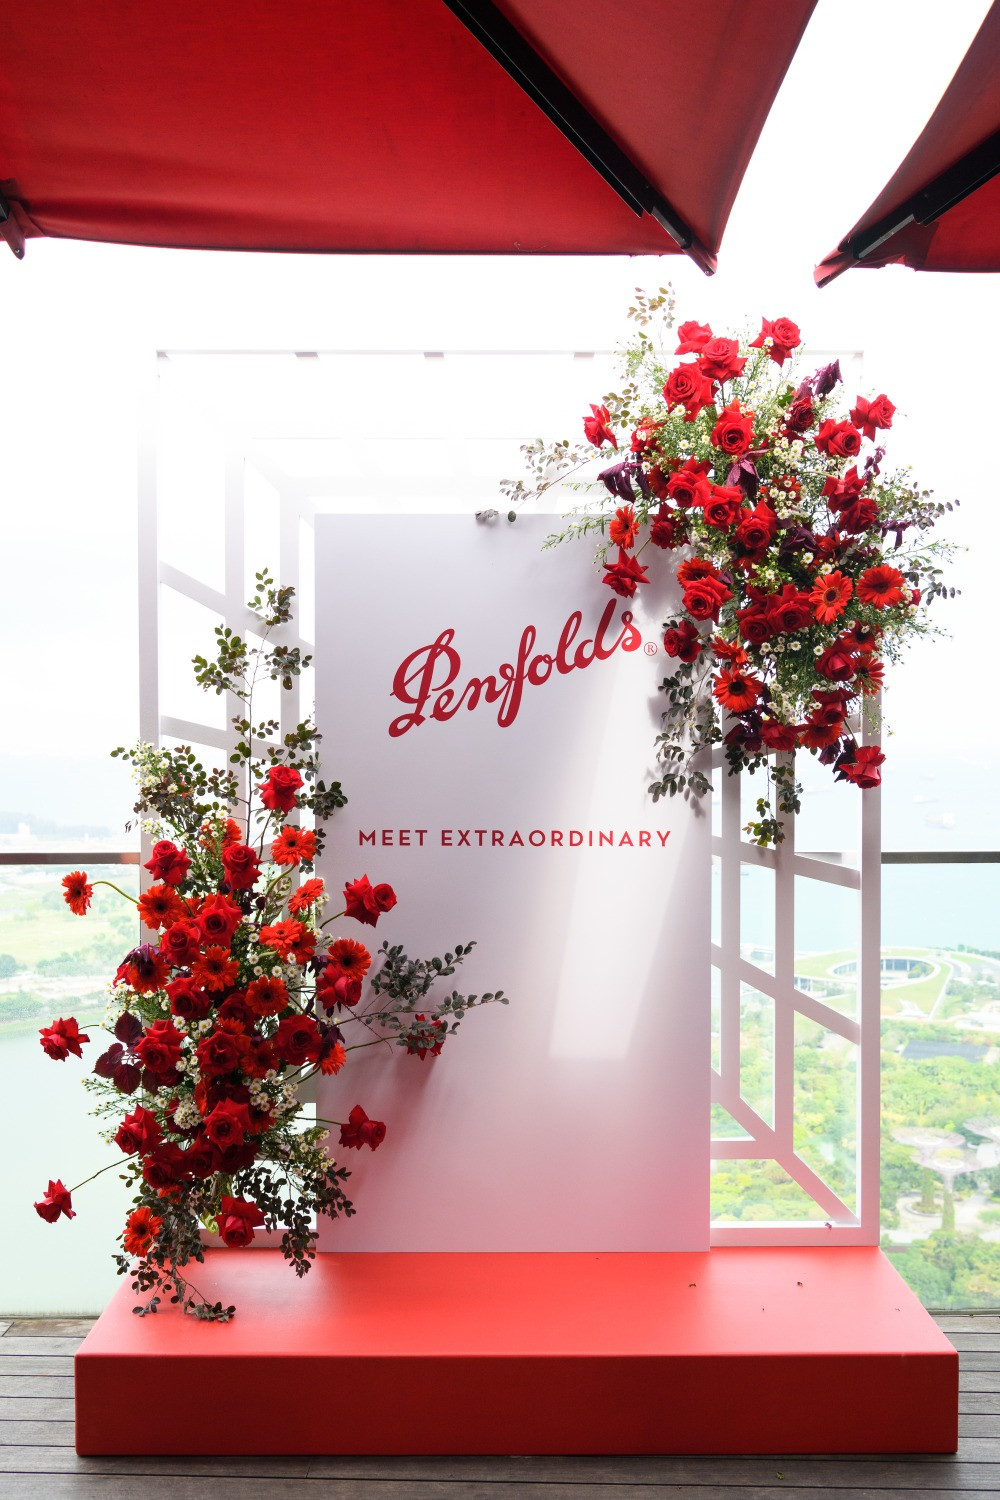 Red Events Singapore - Penfolds at Ce La Vi Marina Bay Sands (Social Distance Product Launch)